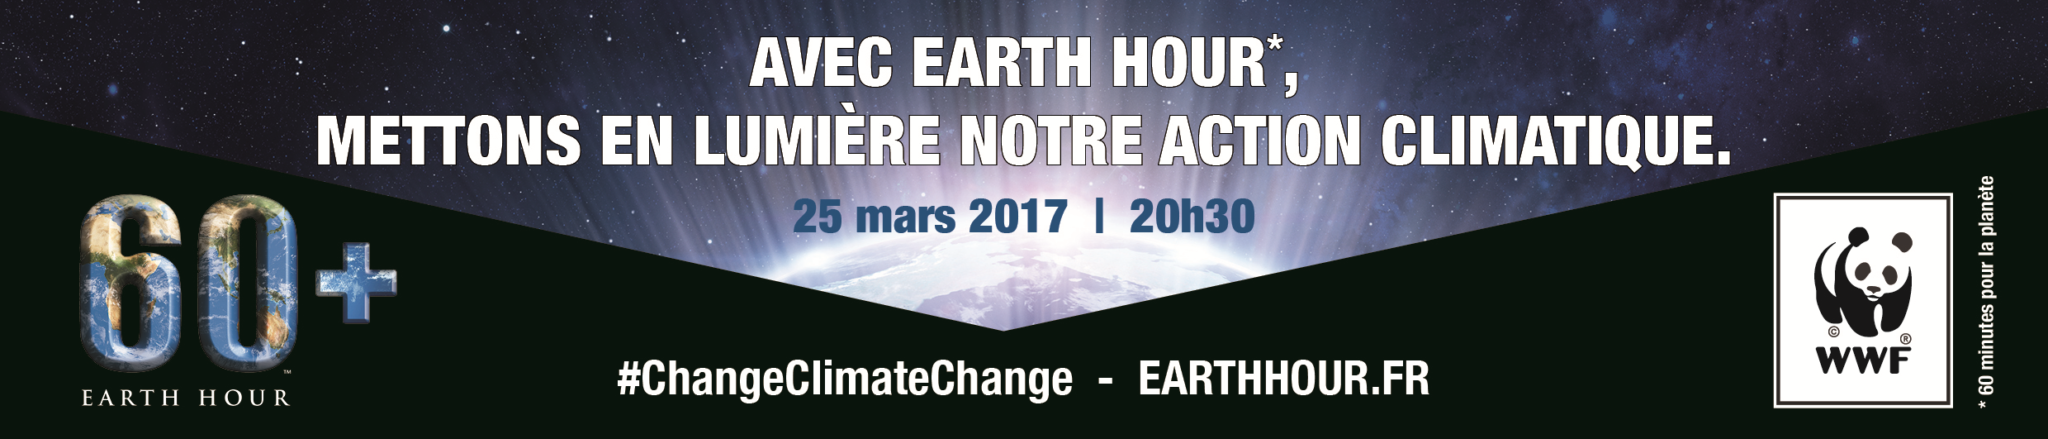 Earth Hour, extinction de la Tour Eiffel le 25 mars